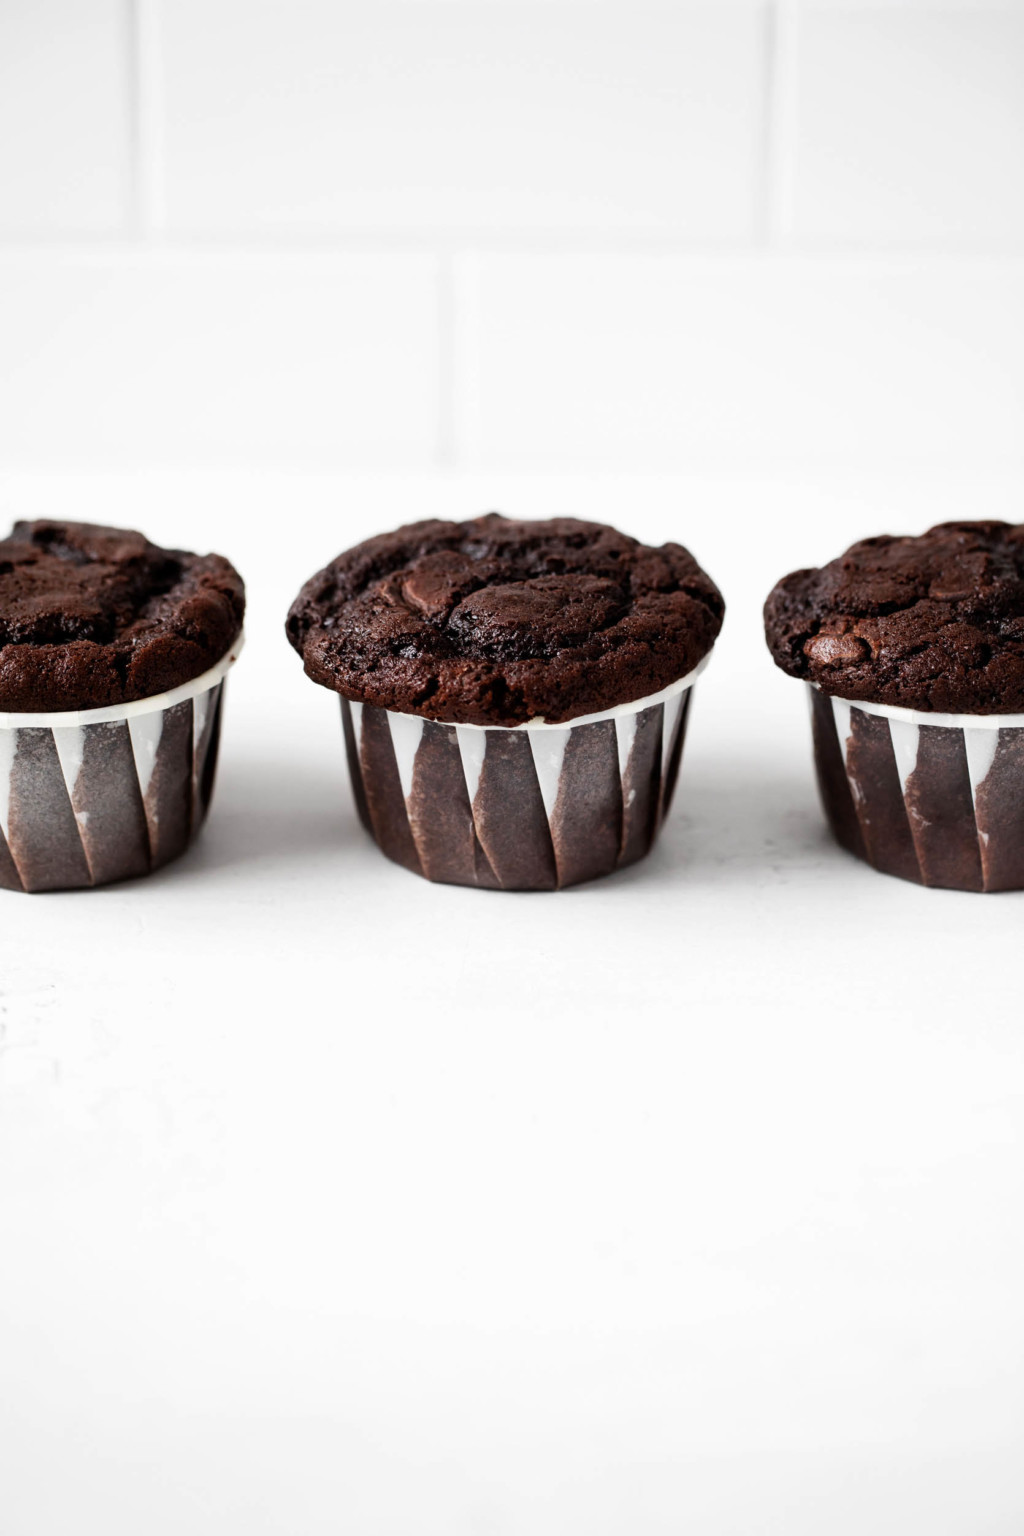 Vegan baked goods with chocolate chips are lined up against a bright, white background.